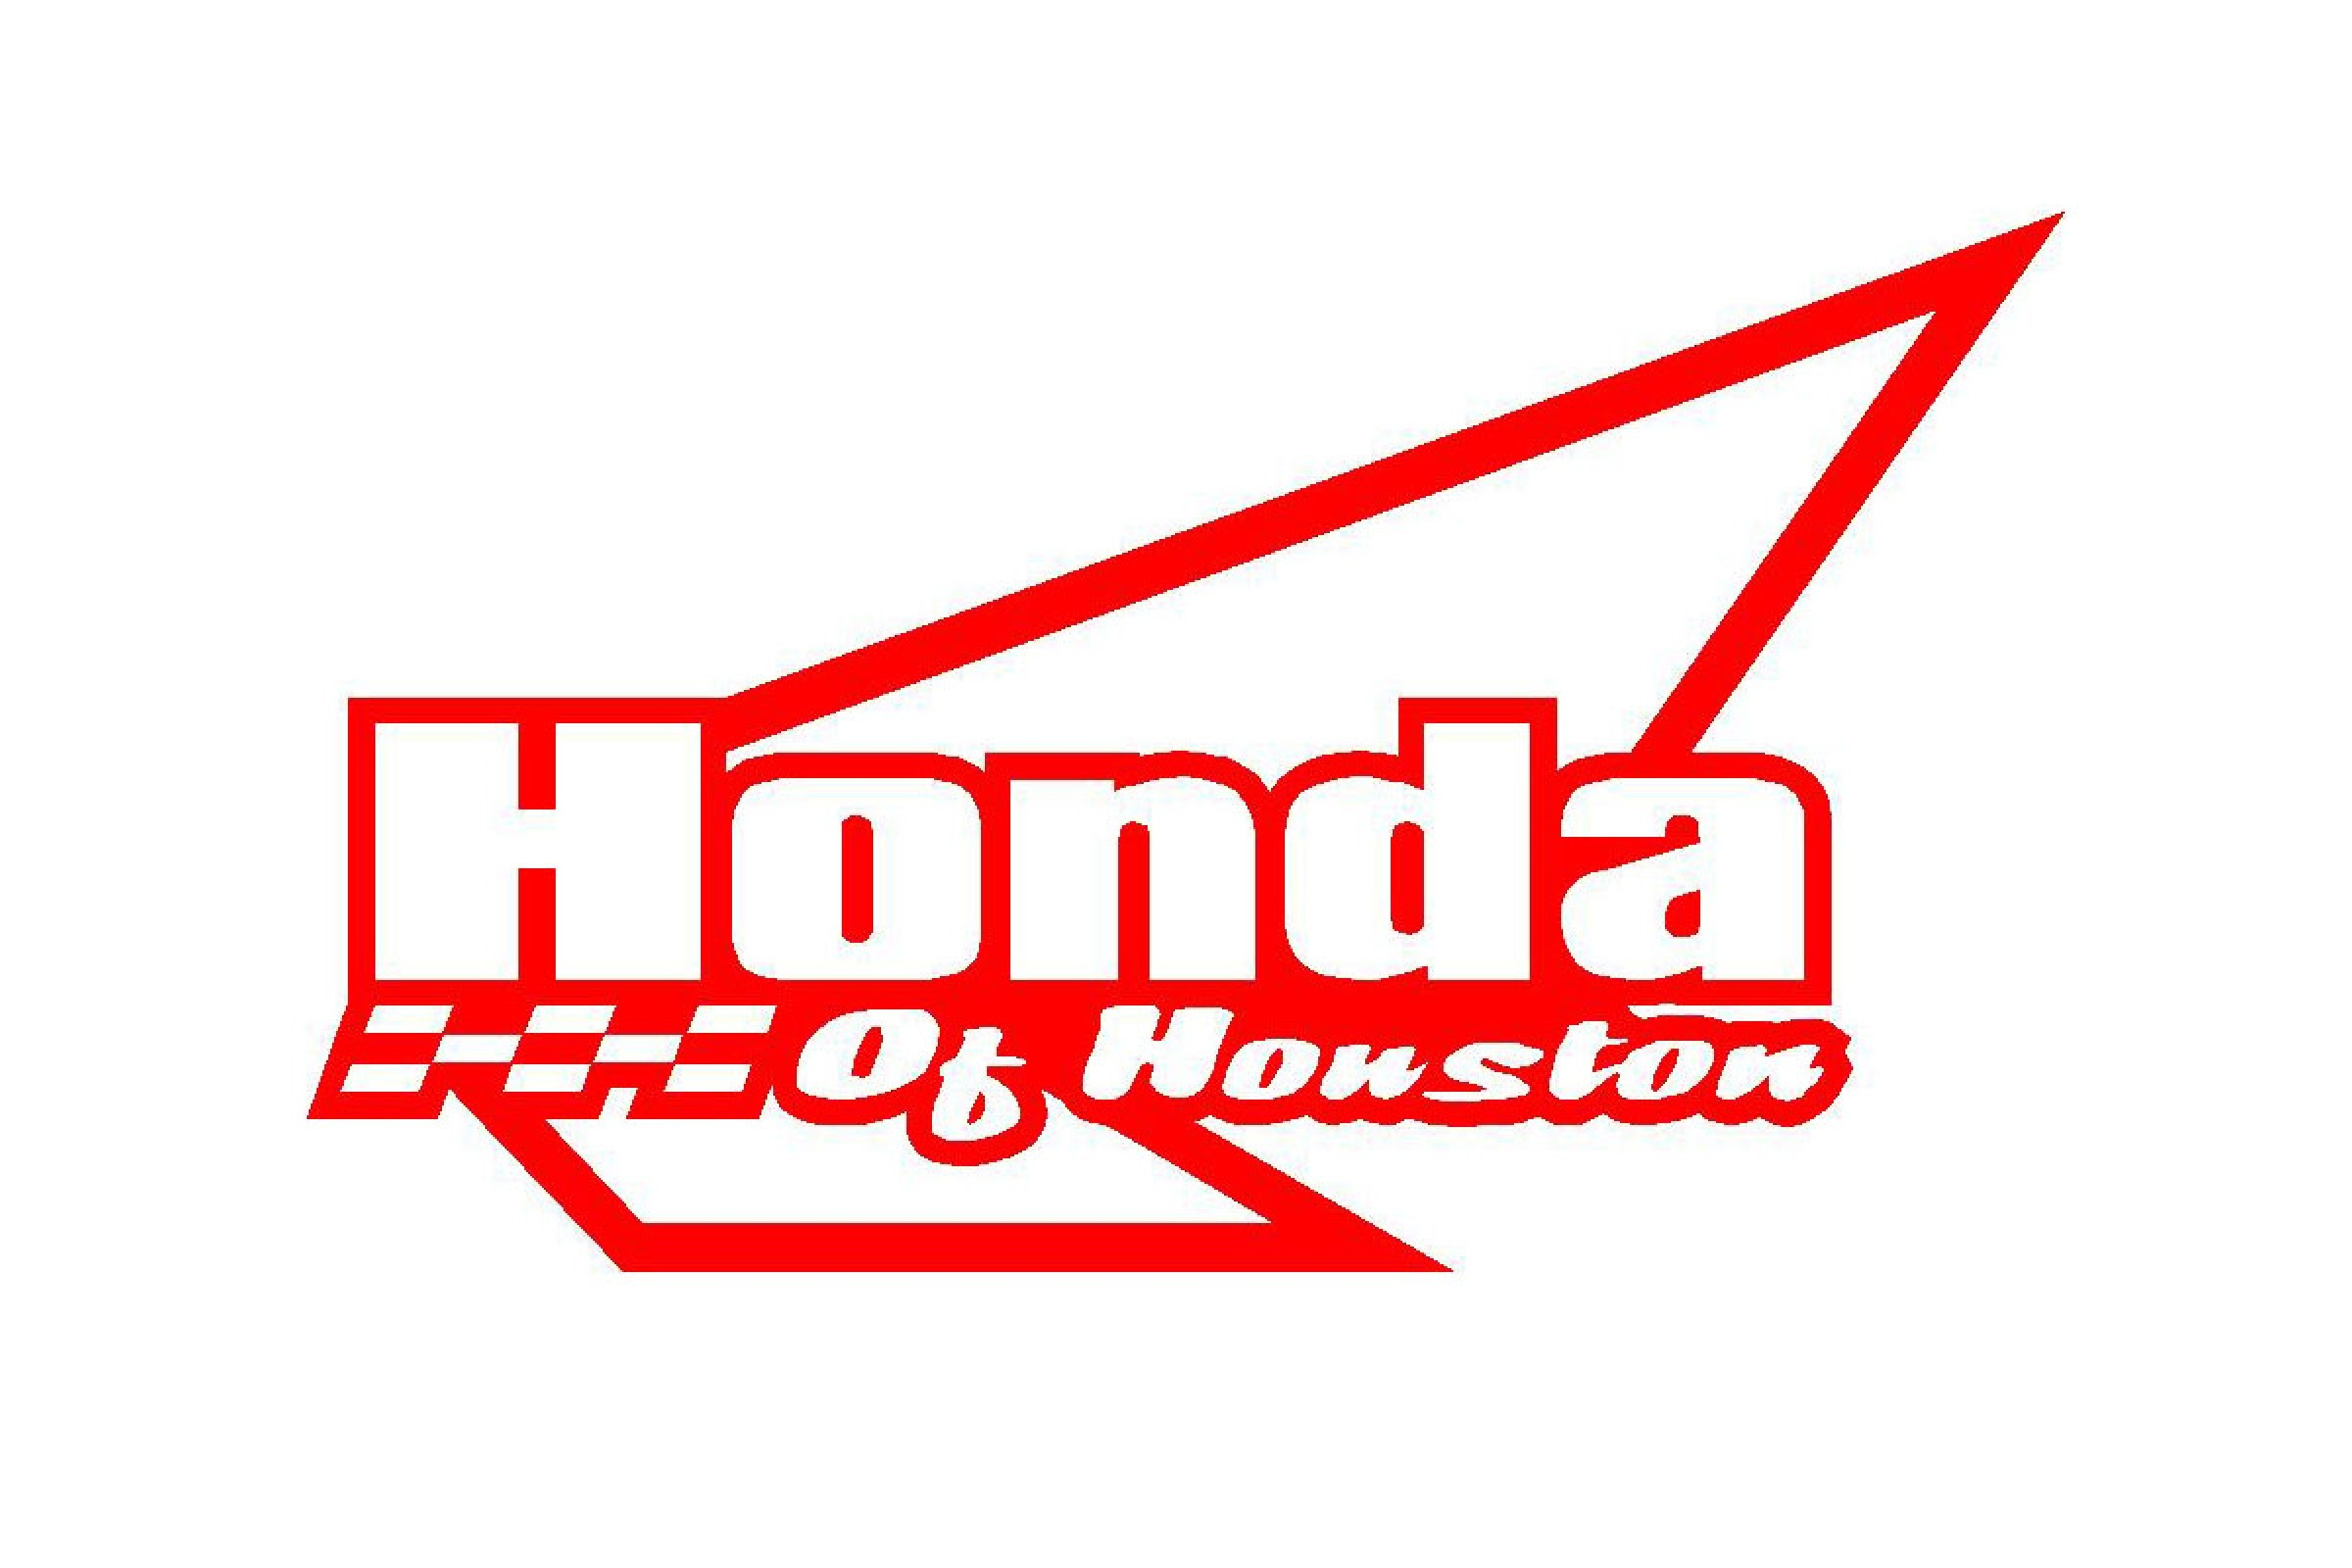 Honda of Houston Closing - Racer X Online